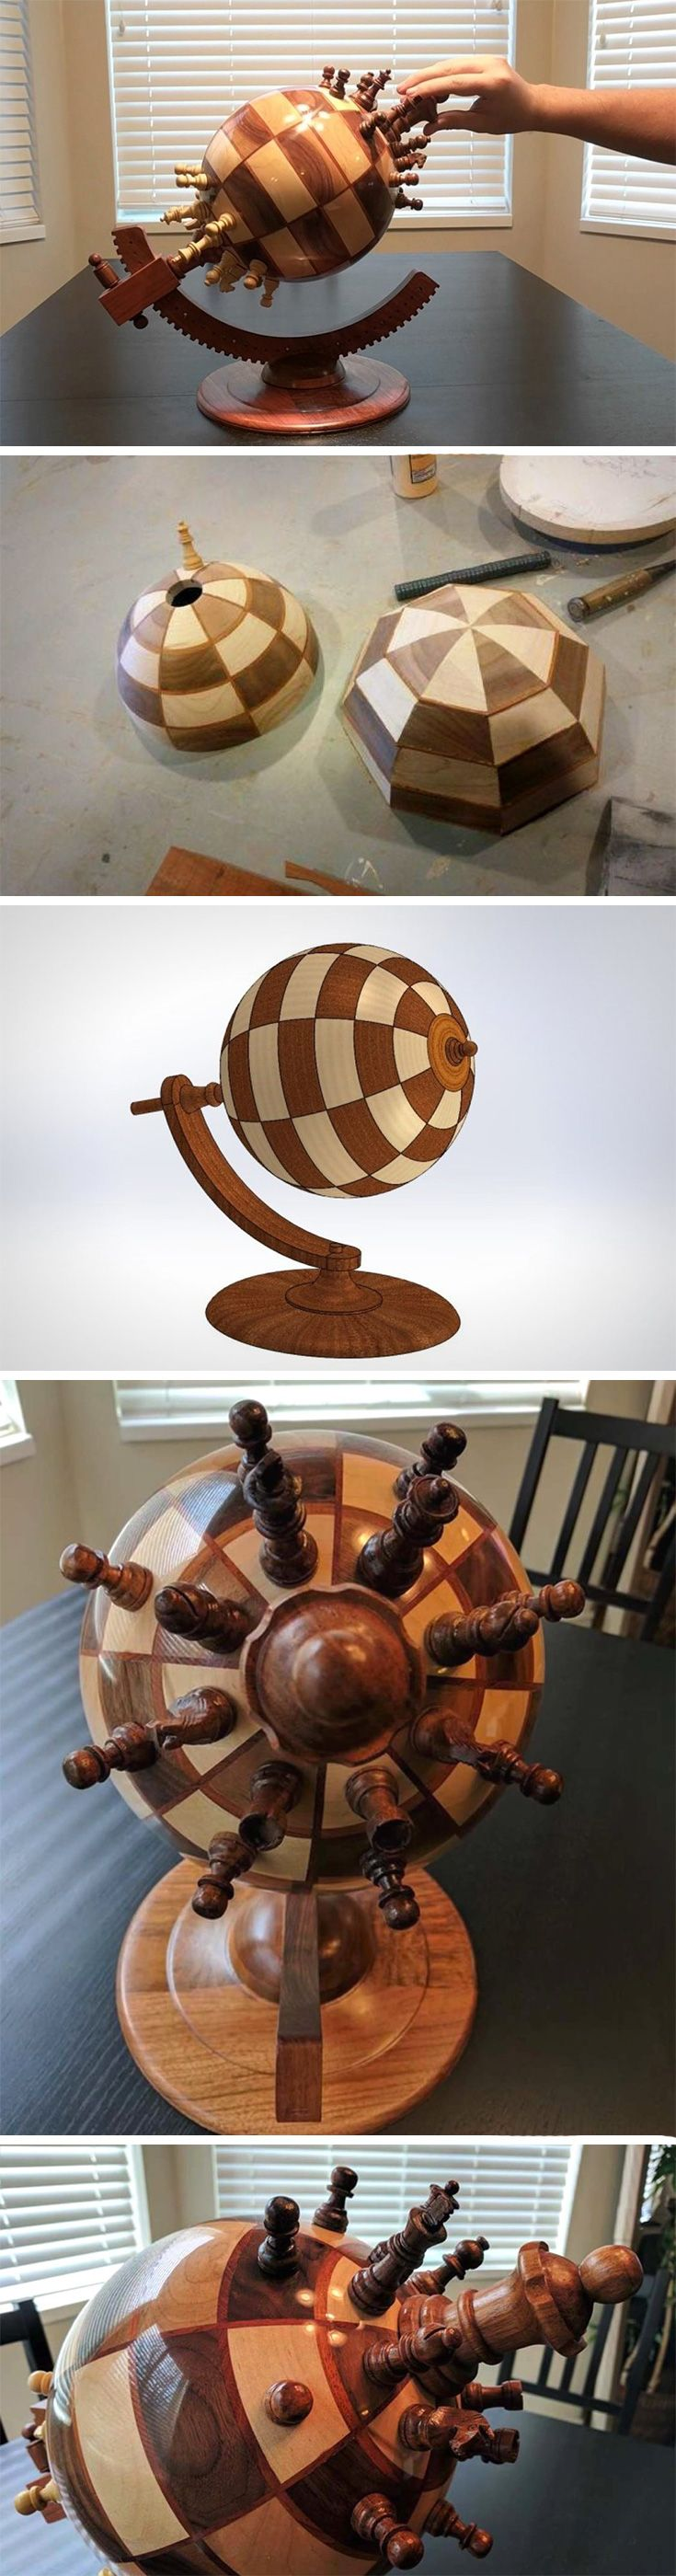 There's something so metaphorical about this spherical chess board! Like countries on our planet constantly picking sides and going on war, this spherical chessboard allows two teams to play against each other in a rather strangely warped, yet exciting planet-ish dimension.